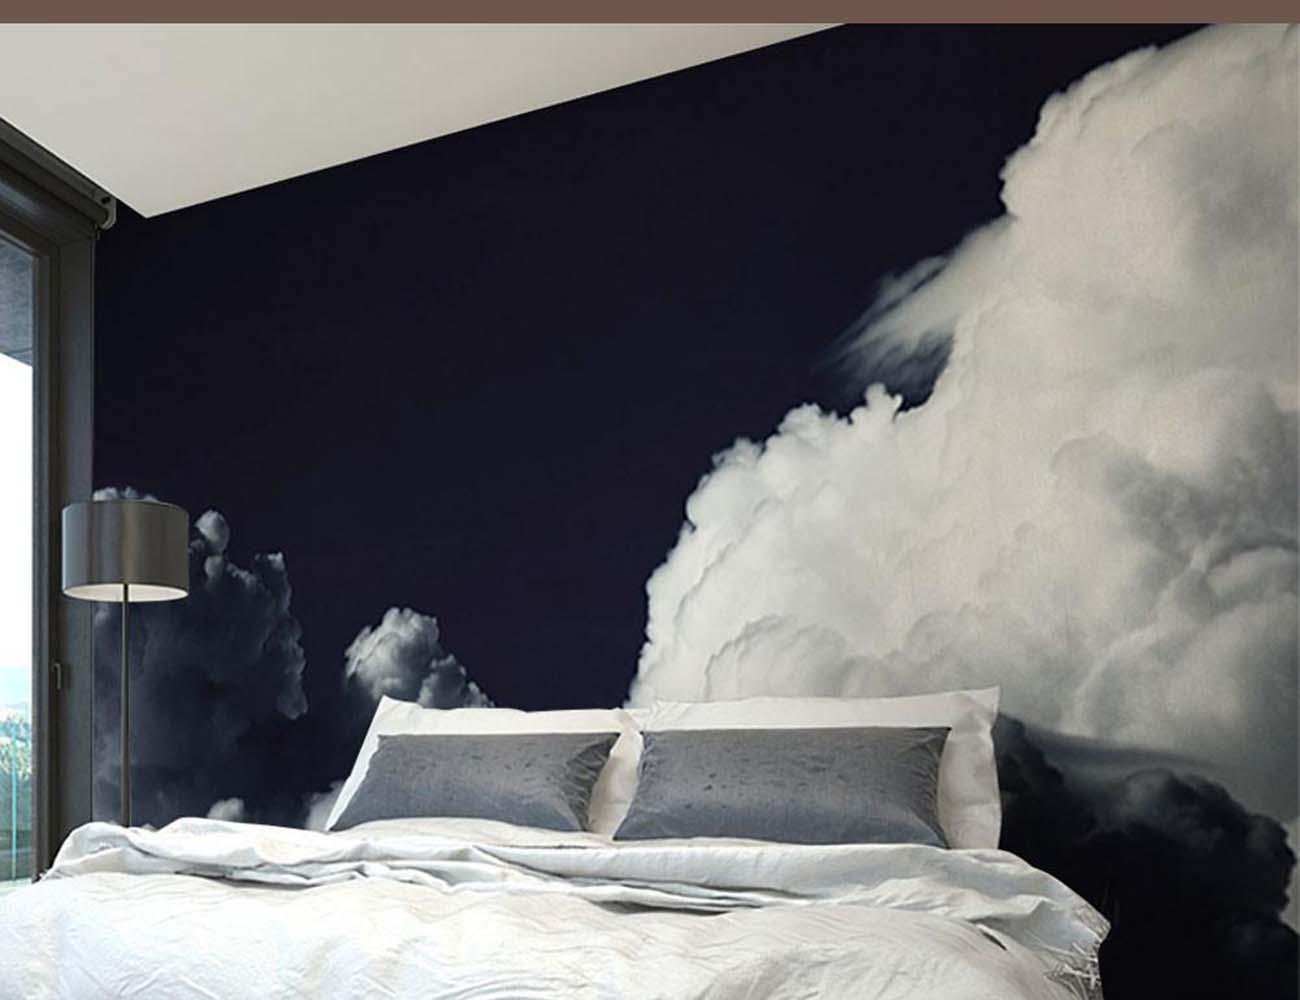 Dark clouds wall mural by eazywallz gadget flow for Cloud wall mural